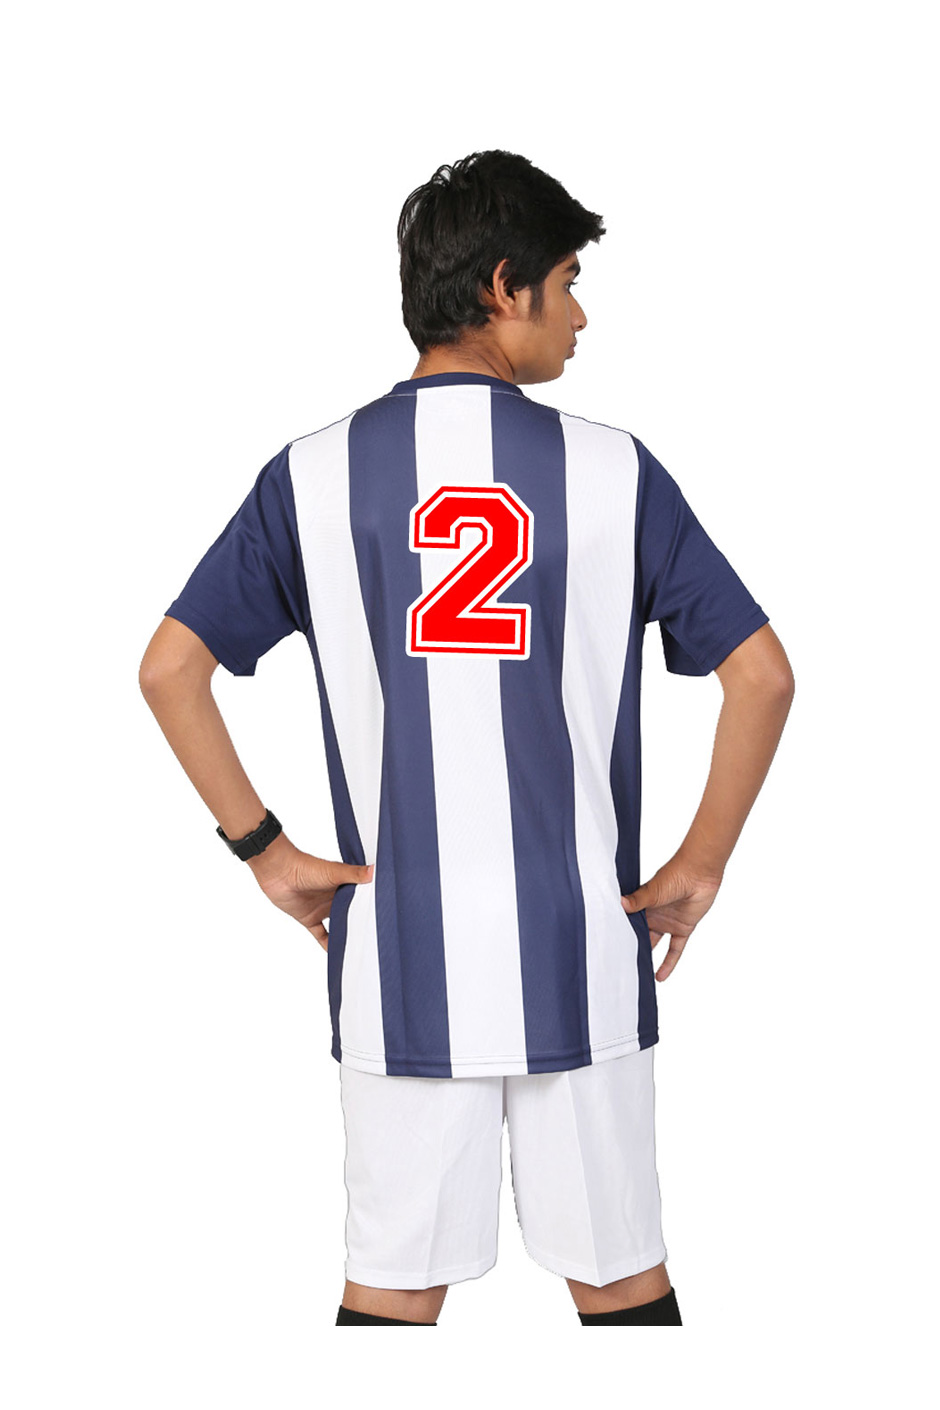 timeless design 86e39 b7751 Soccer team apparel